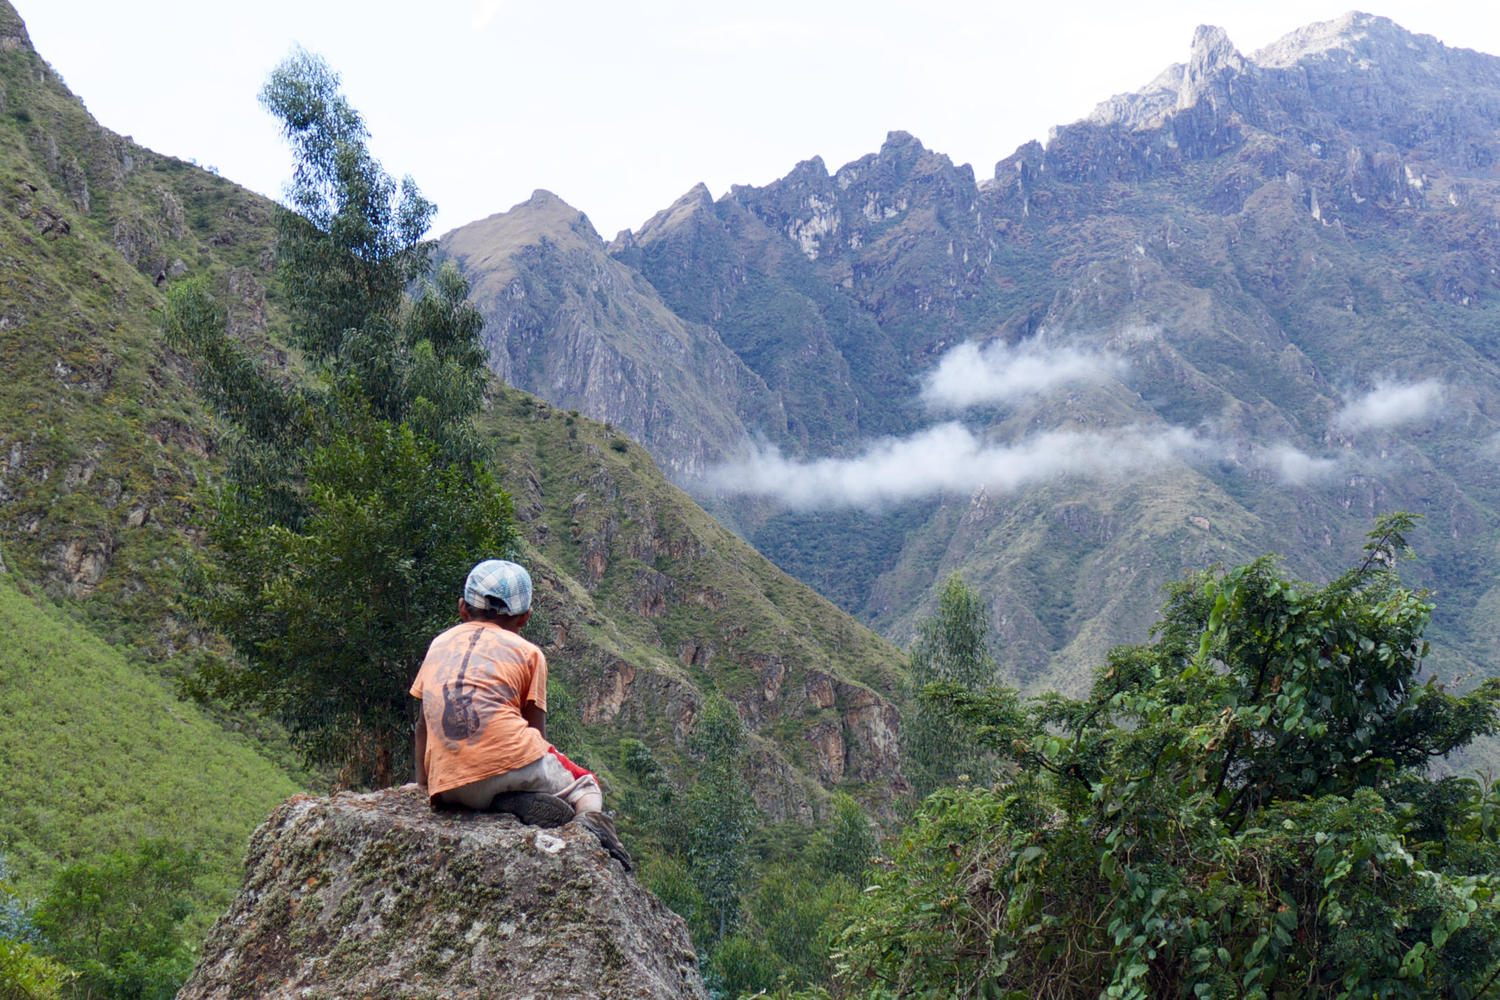 A local boy contemplates the views near our campsite on Day 1 of the Inca Trail